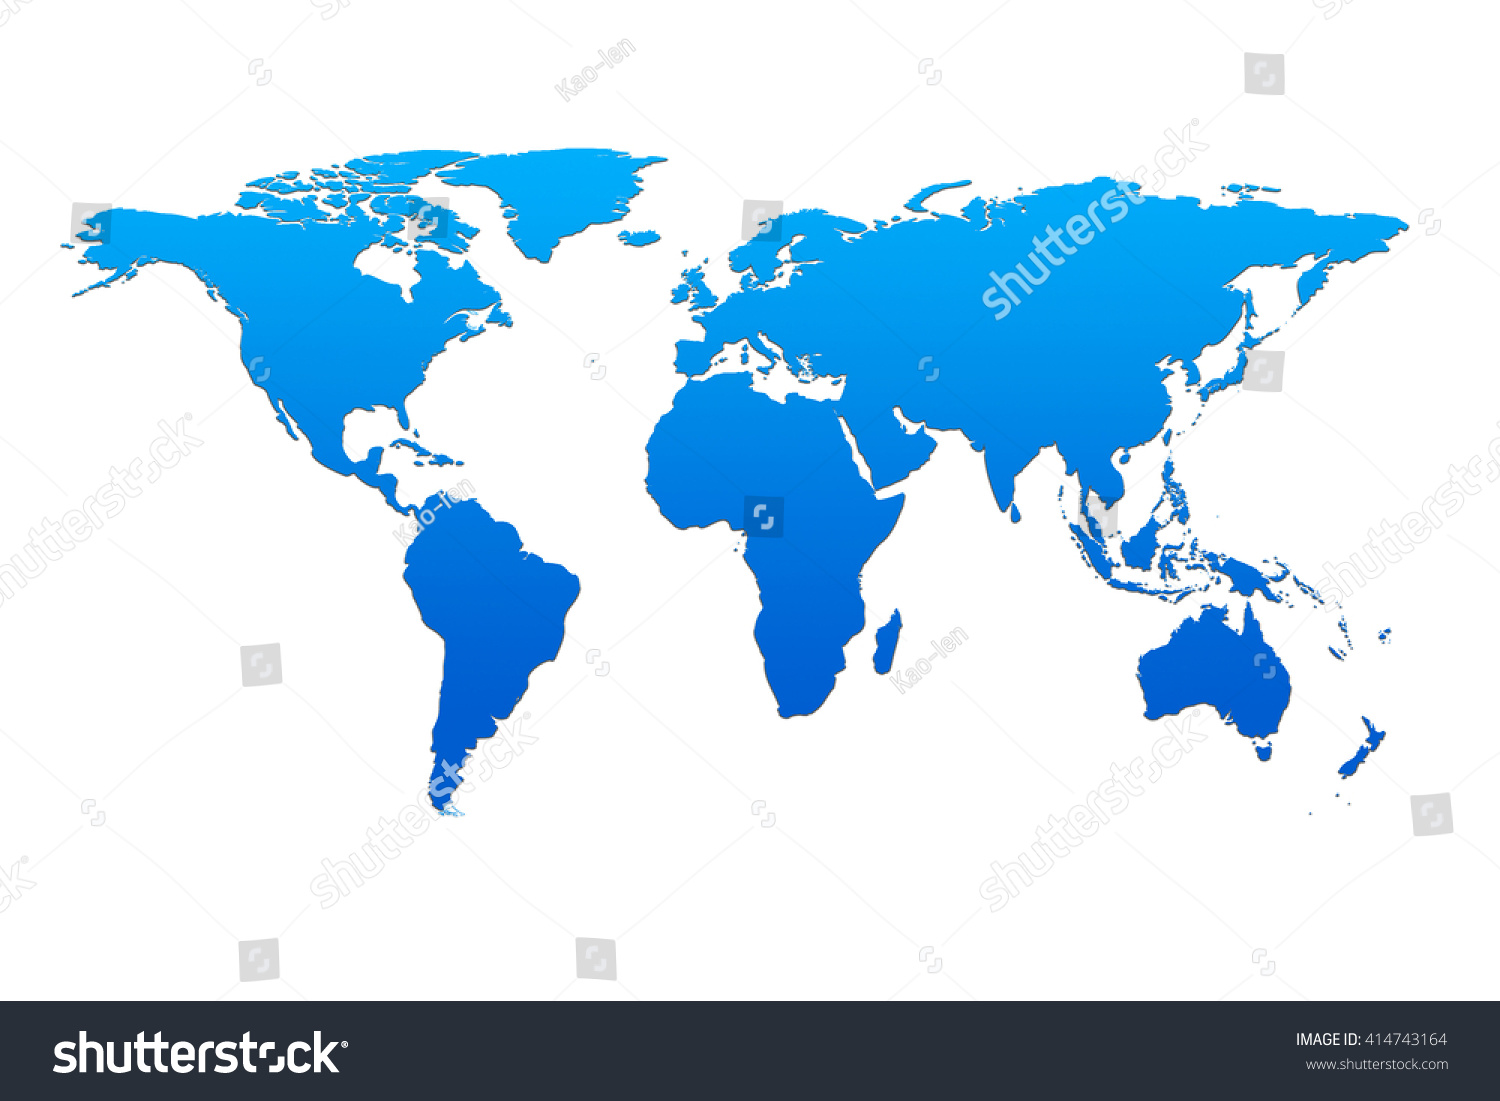 Blue global map world map blank stock illustration 414743164 blue global map world map blank world map template world map flat illustration gumiabroncs Image collections